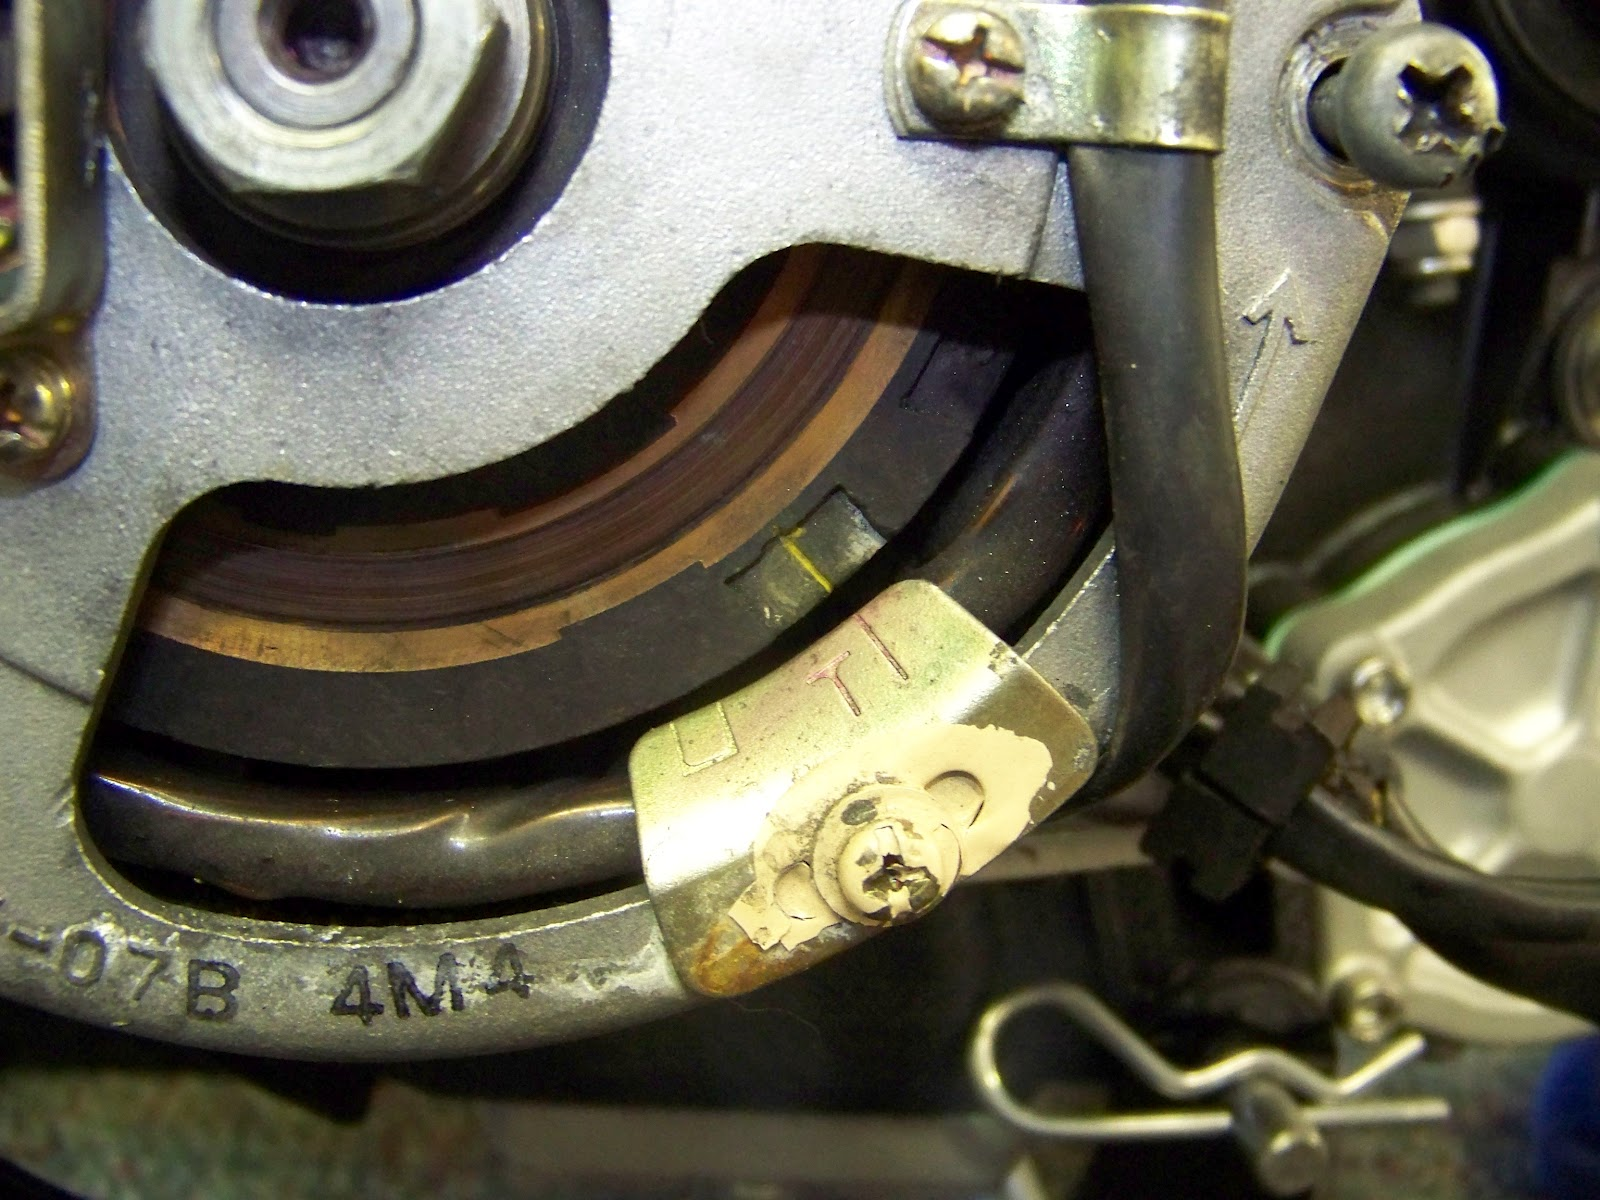 How-To: Pamcopete 277 Ignition Install - Hughs Hand Built on chopper wiring diagram, yz426f wiring diagram, xvz1300 wiring diagram, yamaha wiring diagram, cb750 wiring diagram, xs360 wiring diagram, xj550 wiring diagram, xt350 wiring diagram, xv535 wiring diagram, virago wiring diagram, xv920 wiring diagram, xvs650 wiring diagram, xj750 wiring diagram, xj650 wiring diagram, it 250 wiring diagram, xs400 wiring diagram, fz700 wiring diagram, xs850 wiring diagram, fj1100 wiring diagram, xs1100 wiring diagram,